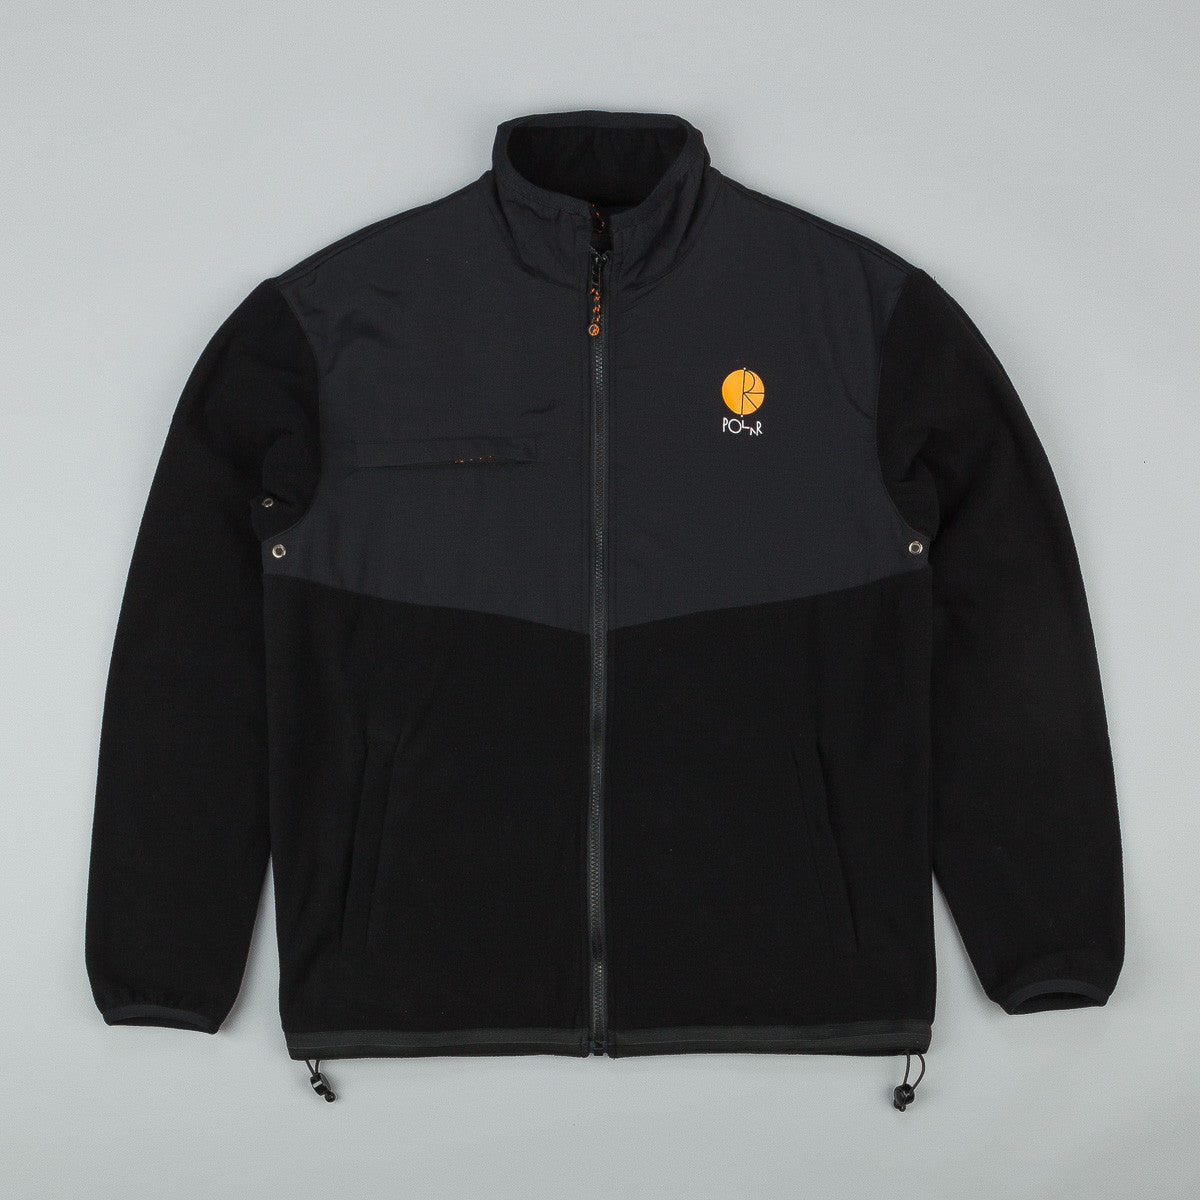 Polar Halberg Jacket